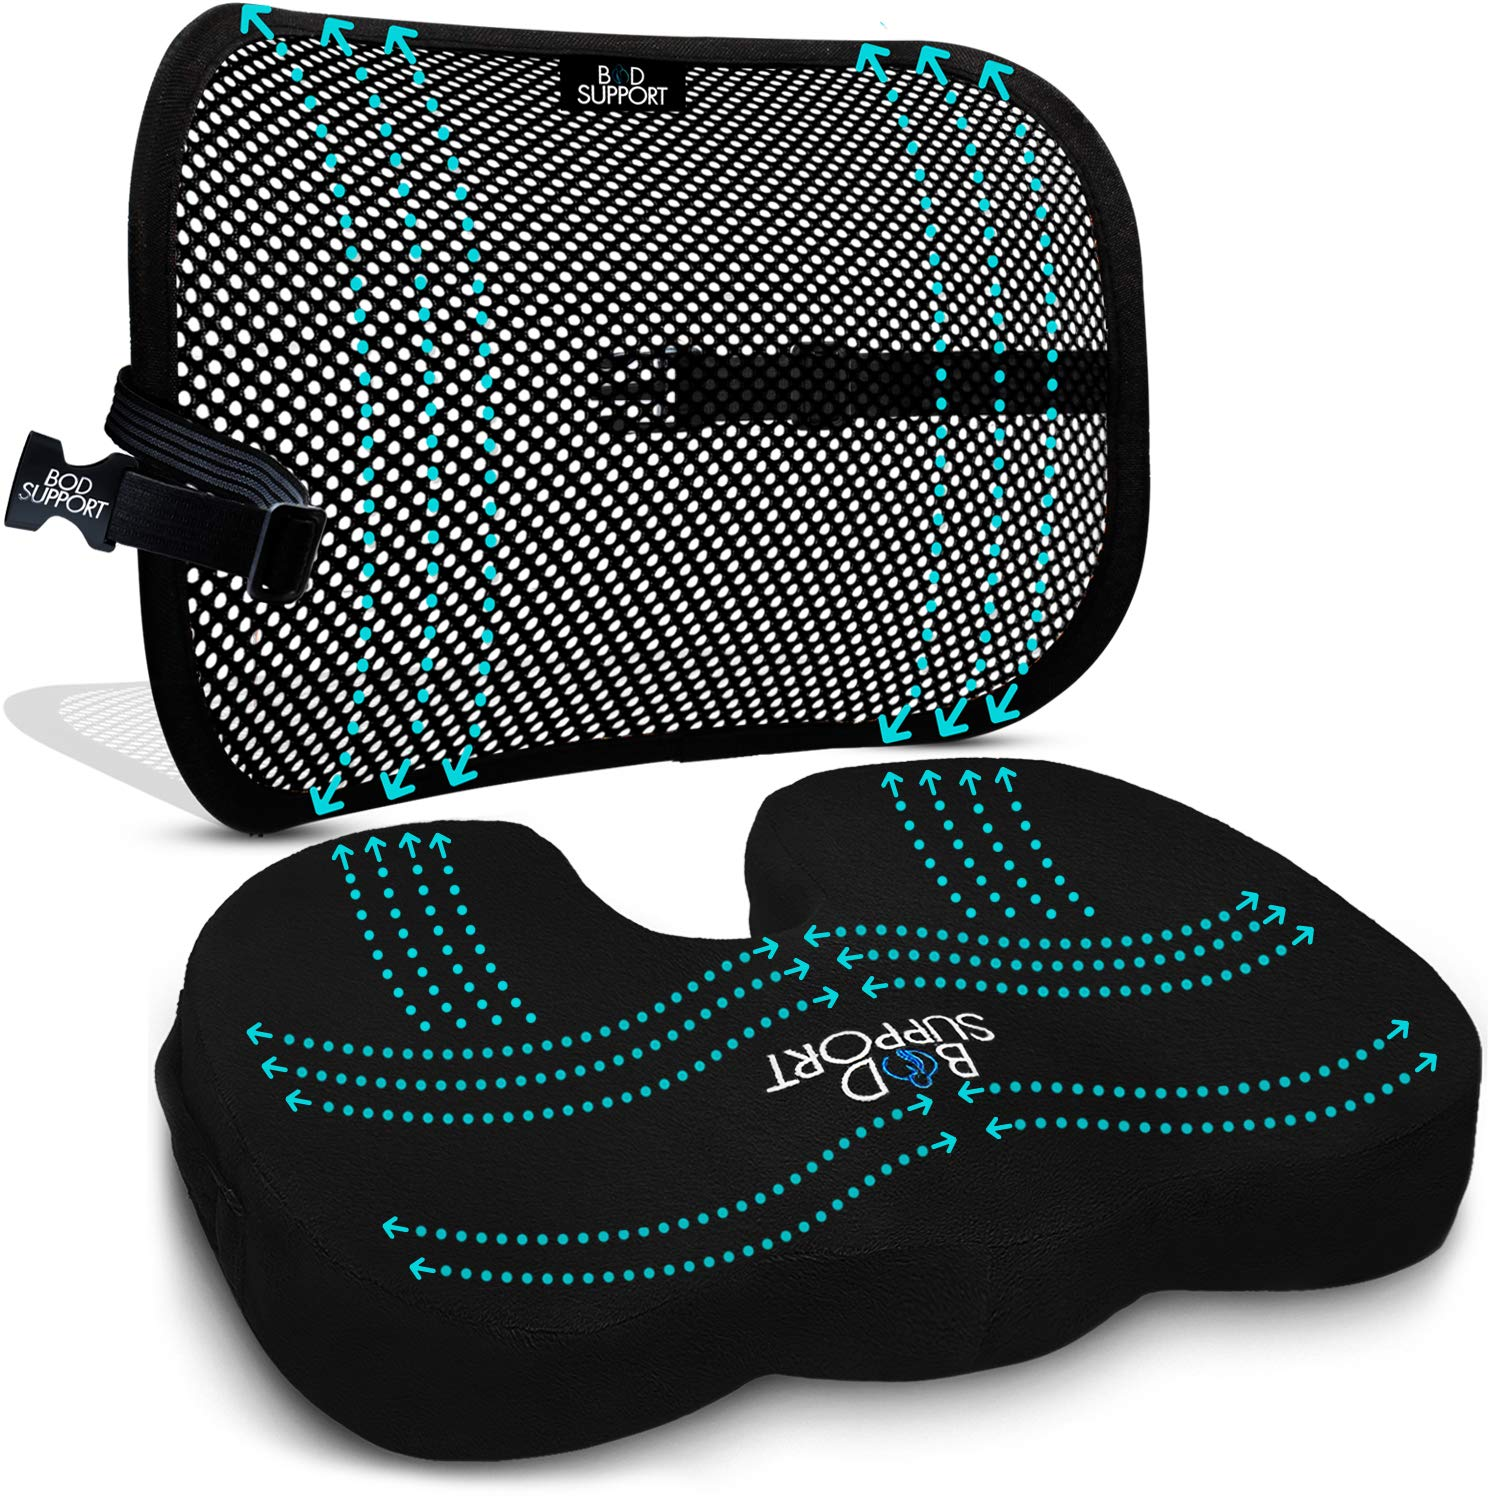 cushion set for back pain relief